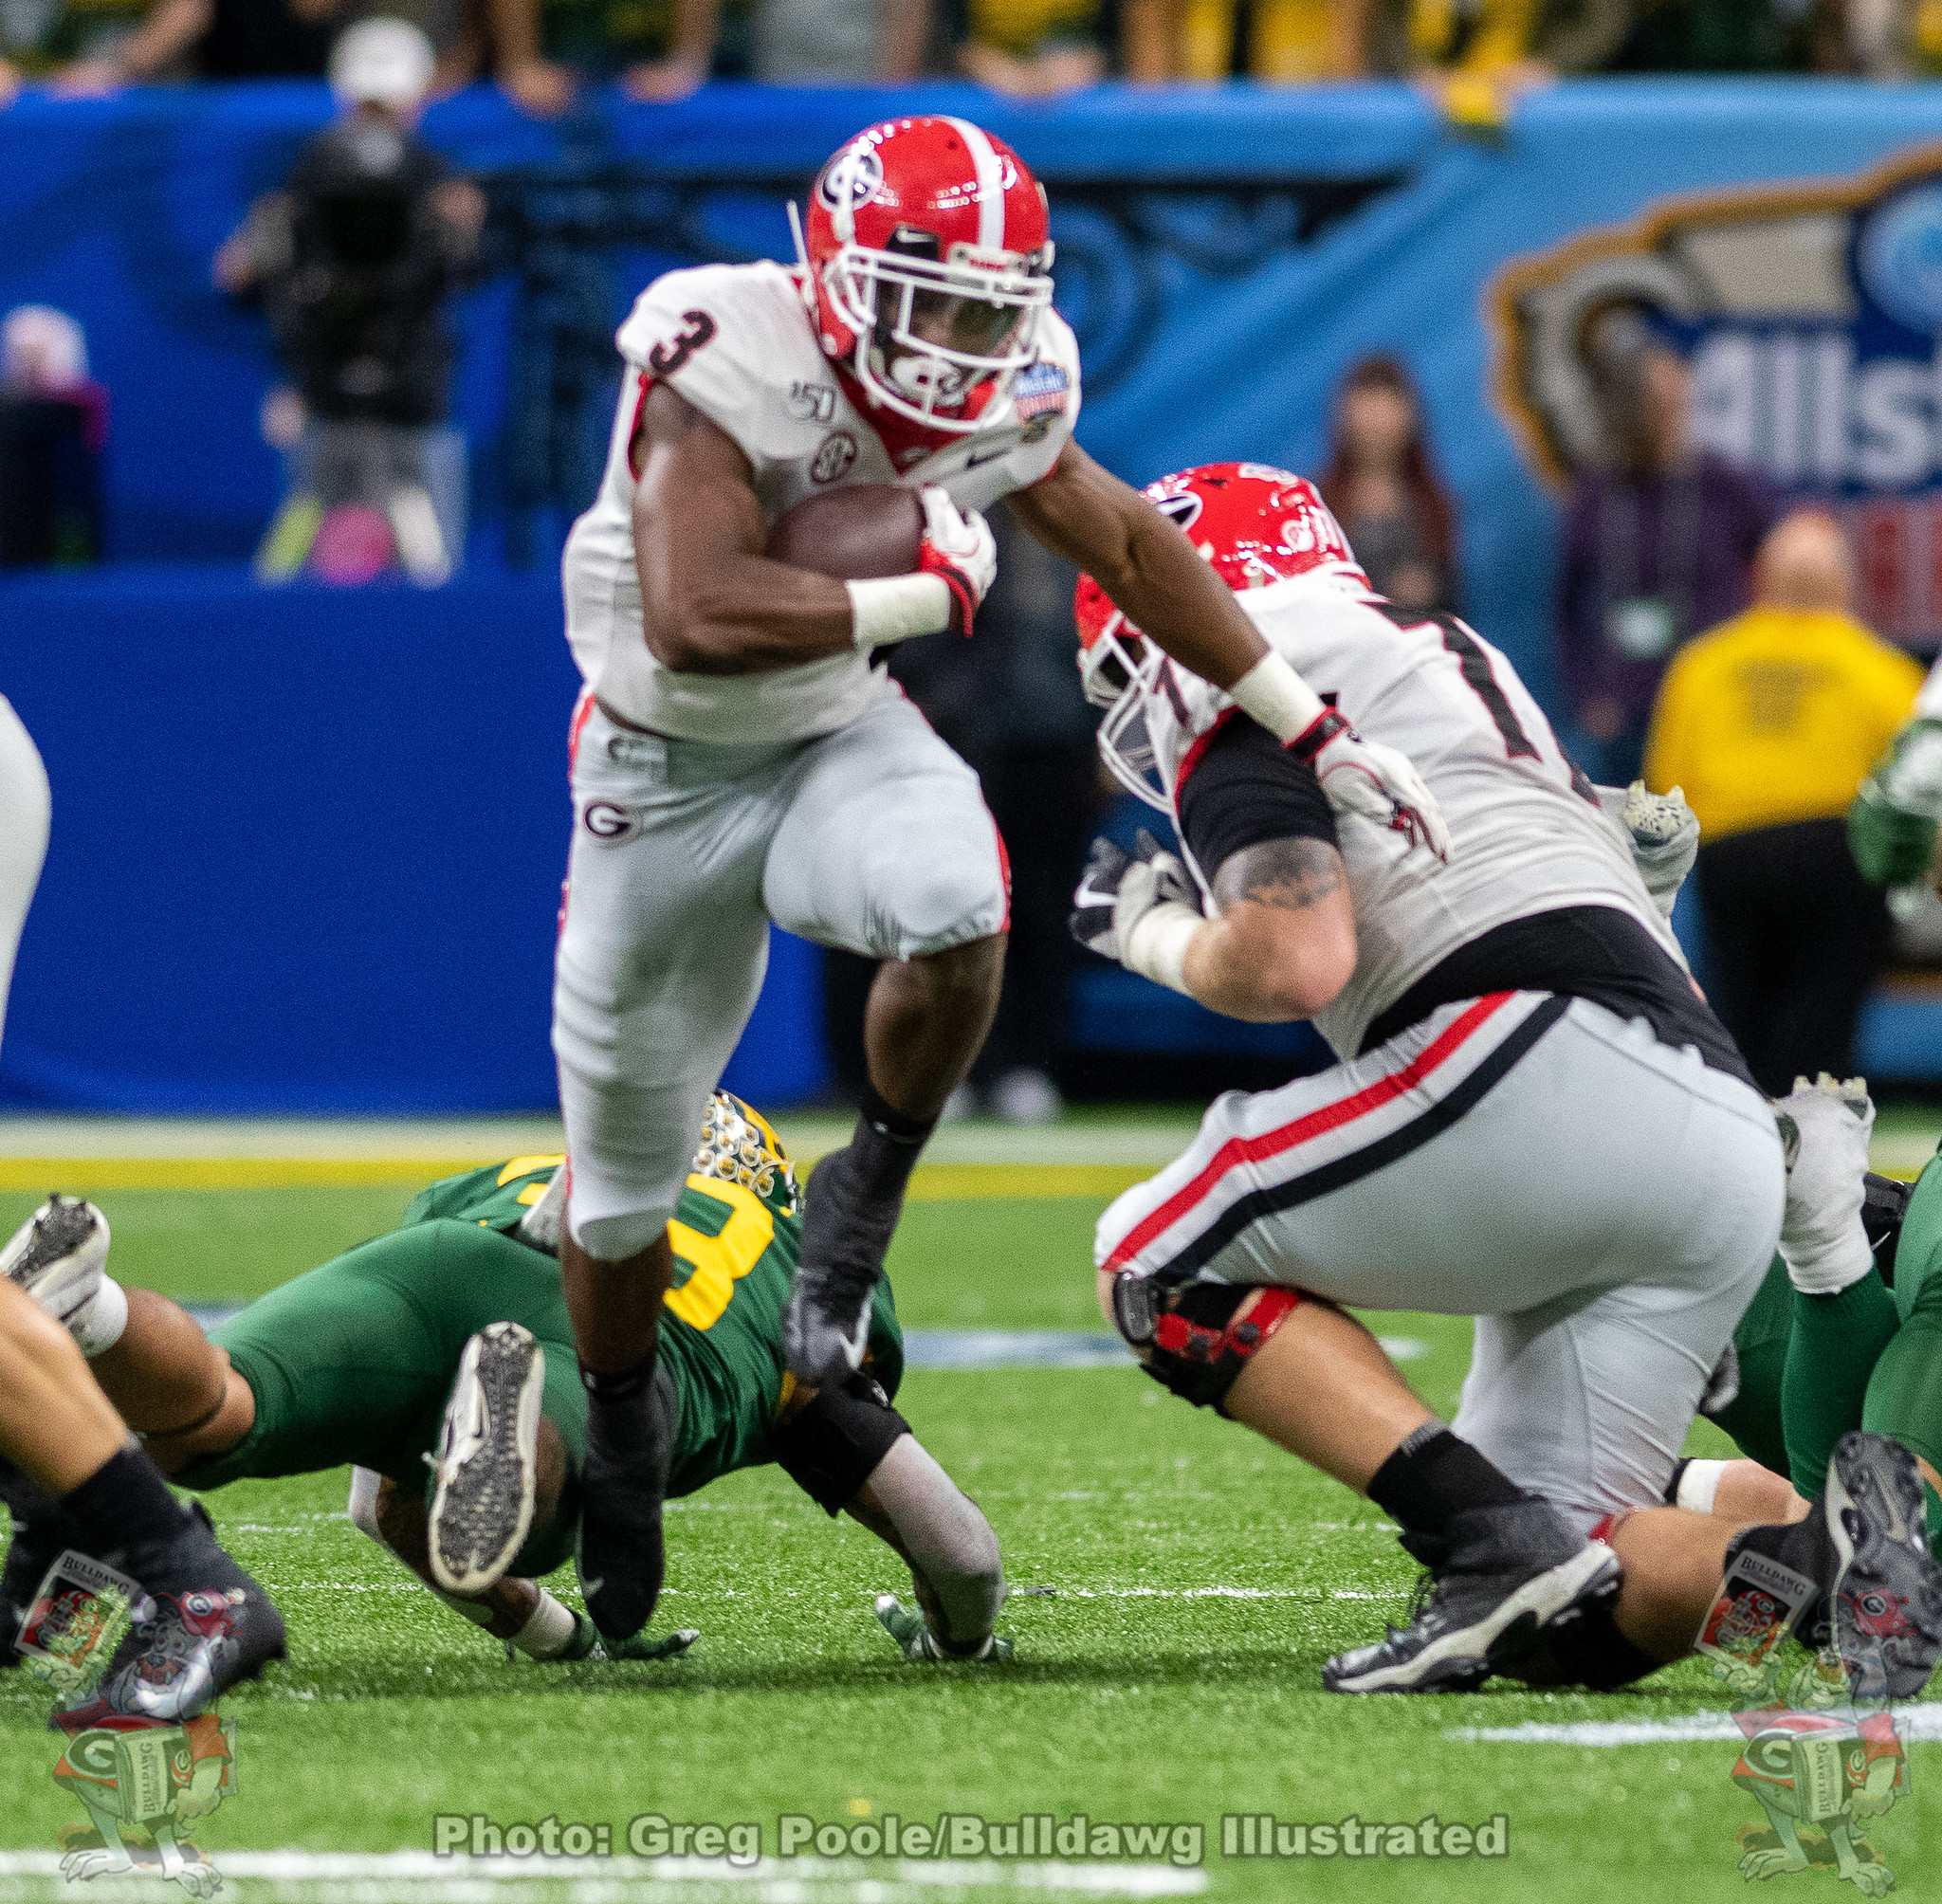 UGA running back Zamir White (3) carrying the ball with authority during the second quarter of the 2020 Sugar Bowl on Wednesday, Jan 1st